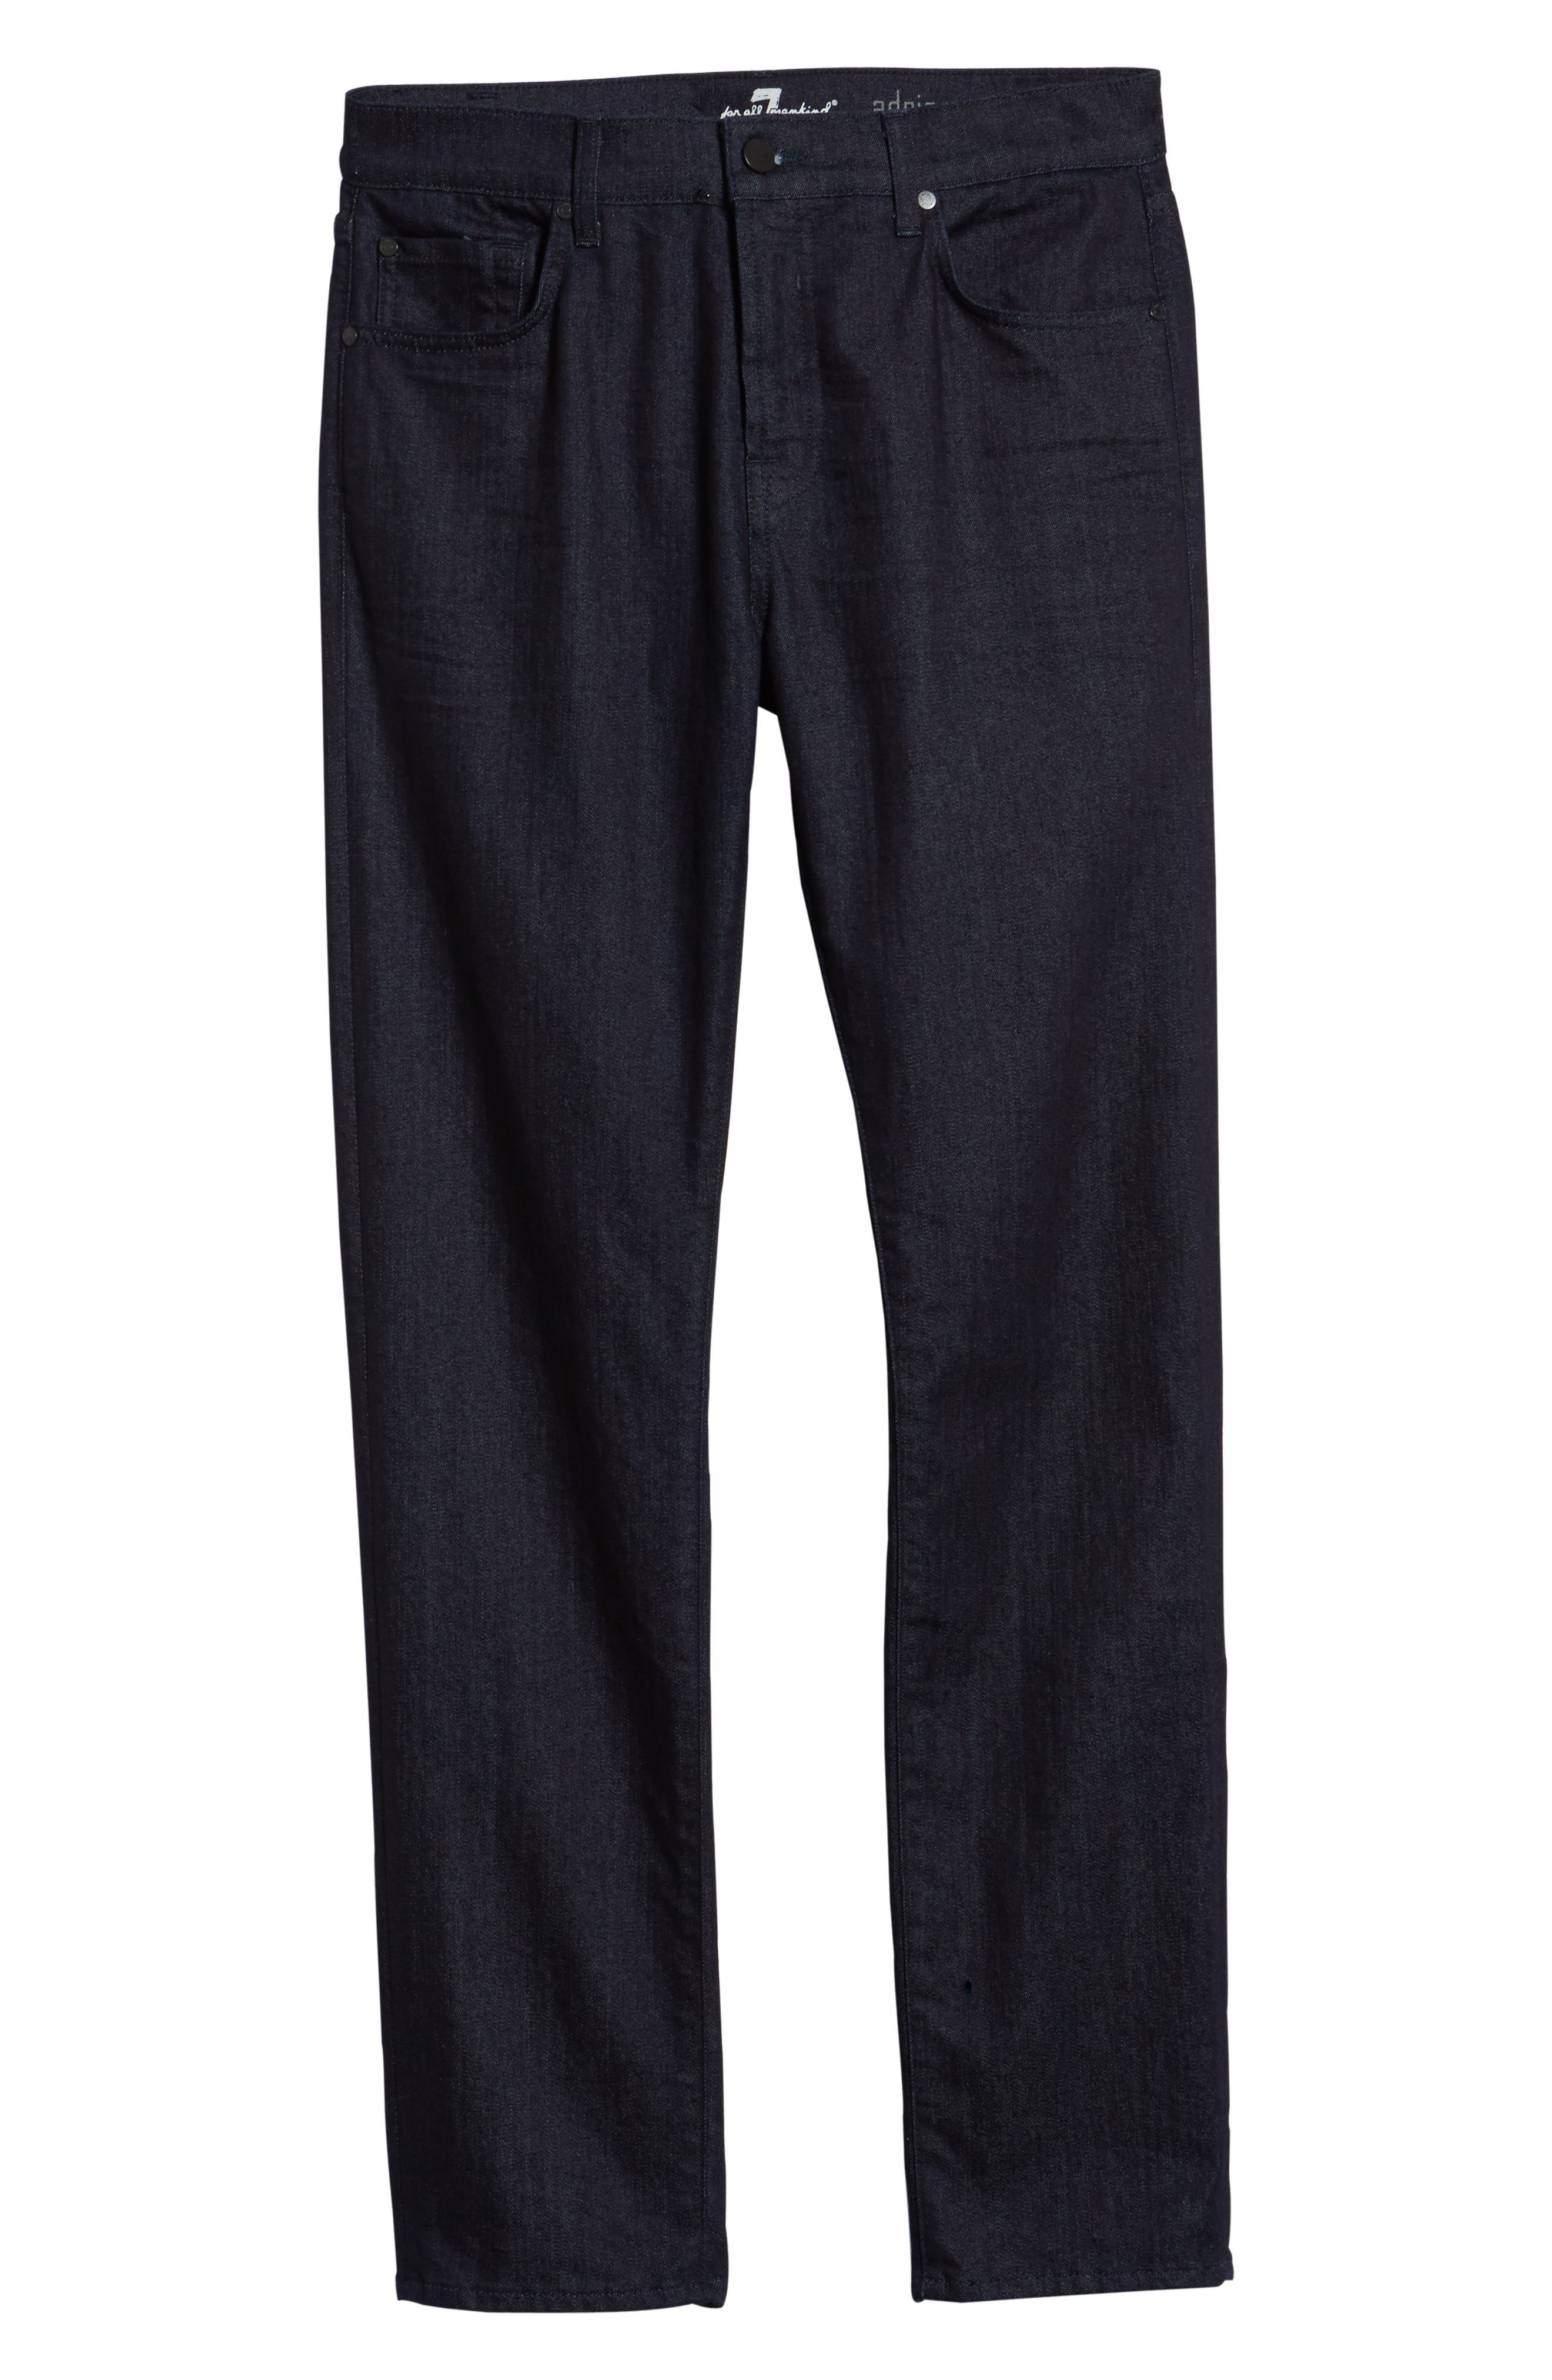 7 FOR ALL MANKIND<SUP>®</SUP>, Adrien Slim Fit Jeans, Alternate thumbnail 7, color, EXECUTIVE